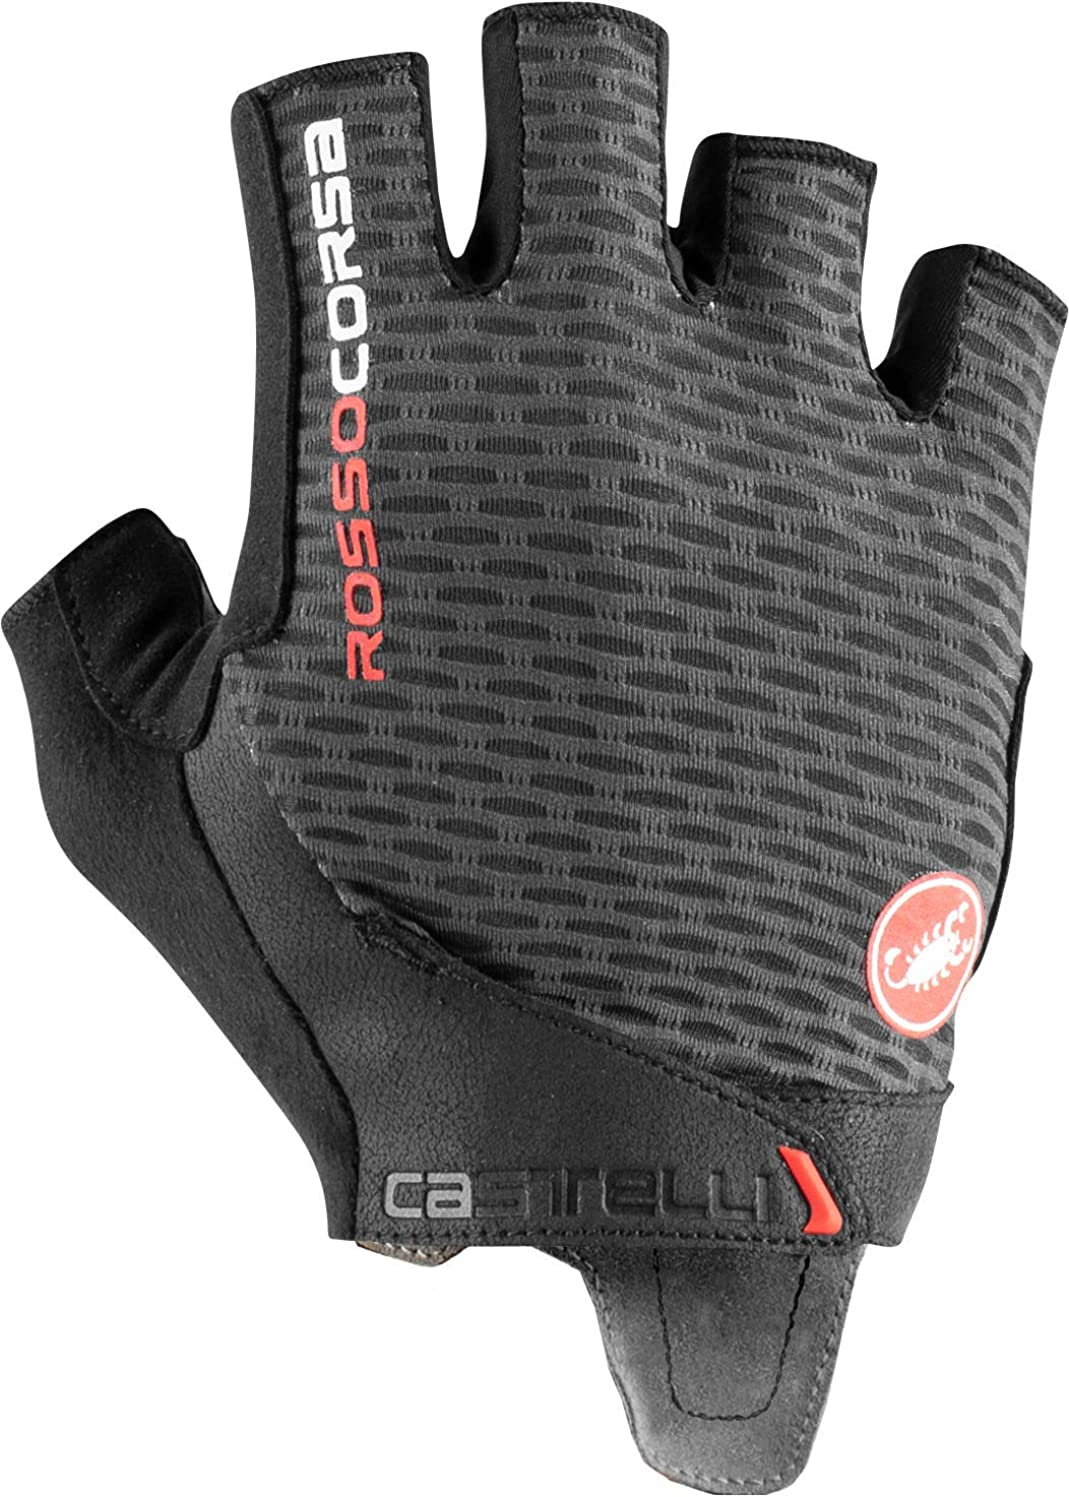 Castelli Cycling Rosso Corsa Fashion Pro V Glove Bik Road Gravel and low-pricing for